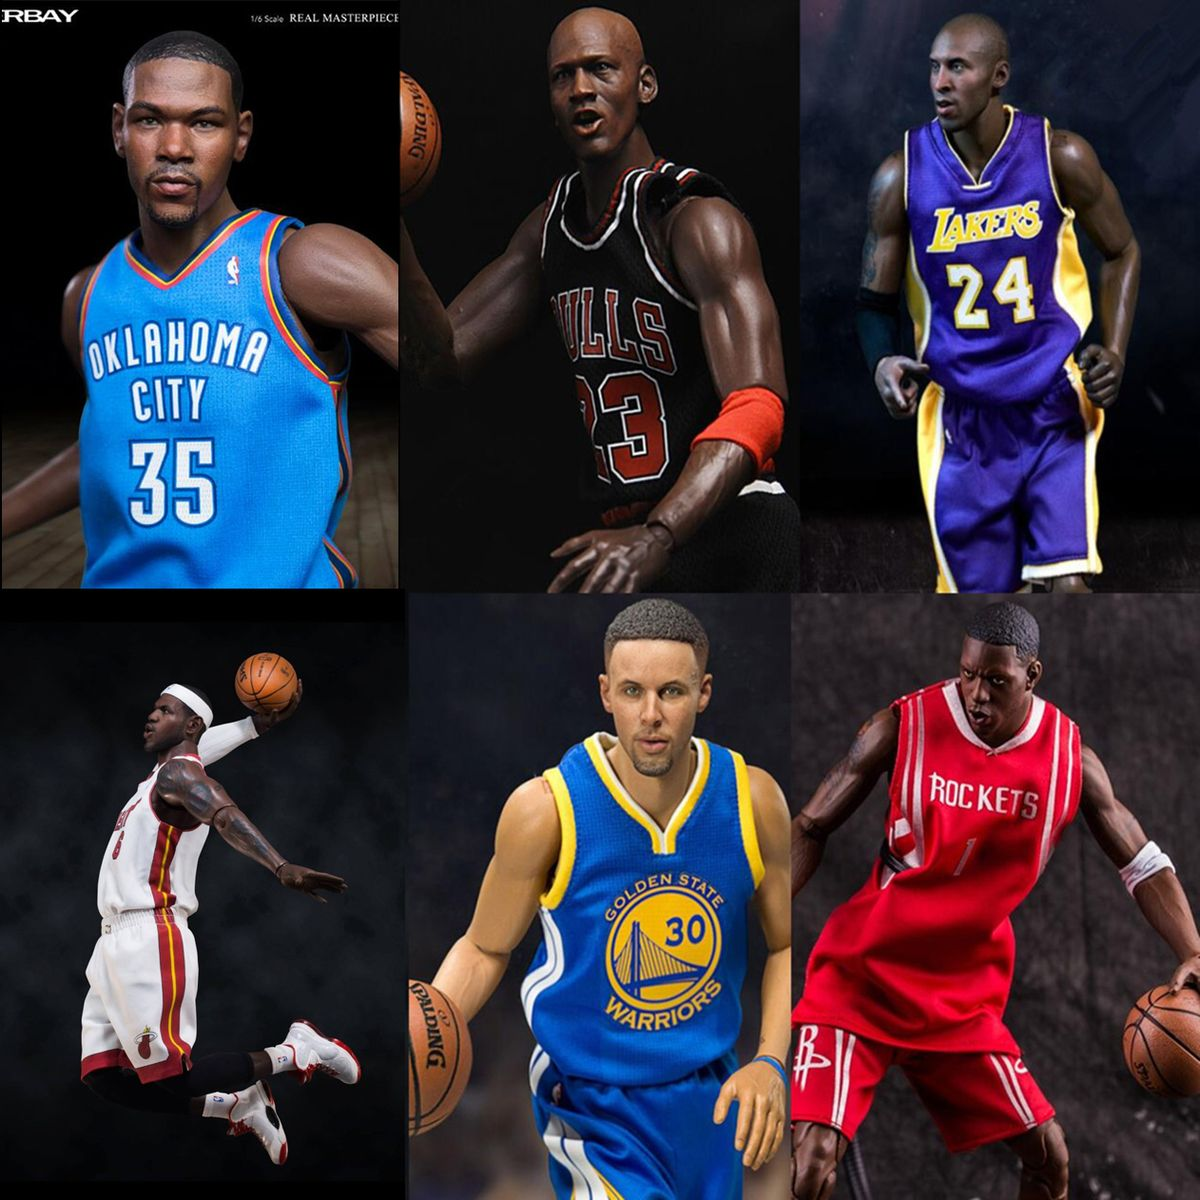 Nba Basketball Star Stephen Curry, Action Figures, 30 Cm High Toys Model For Sport, Lovers Collection